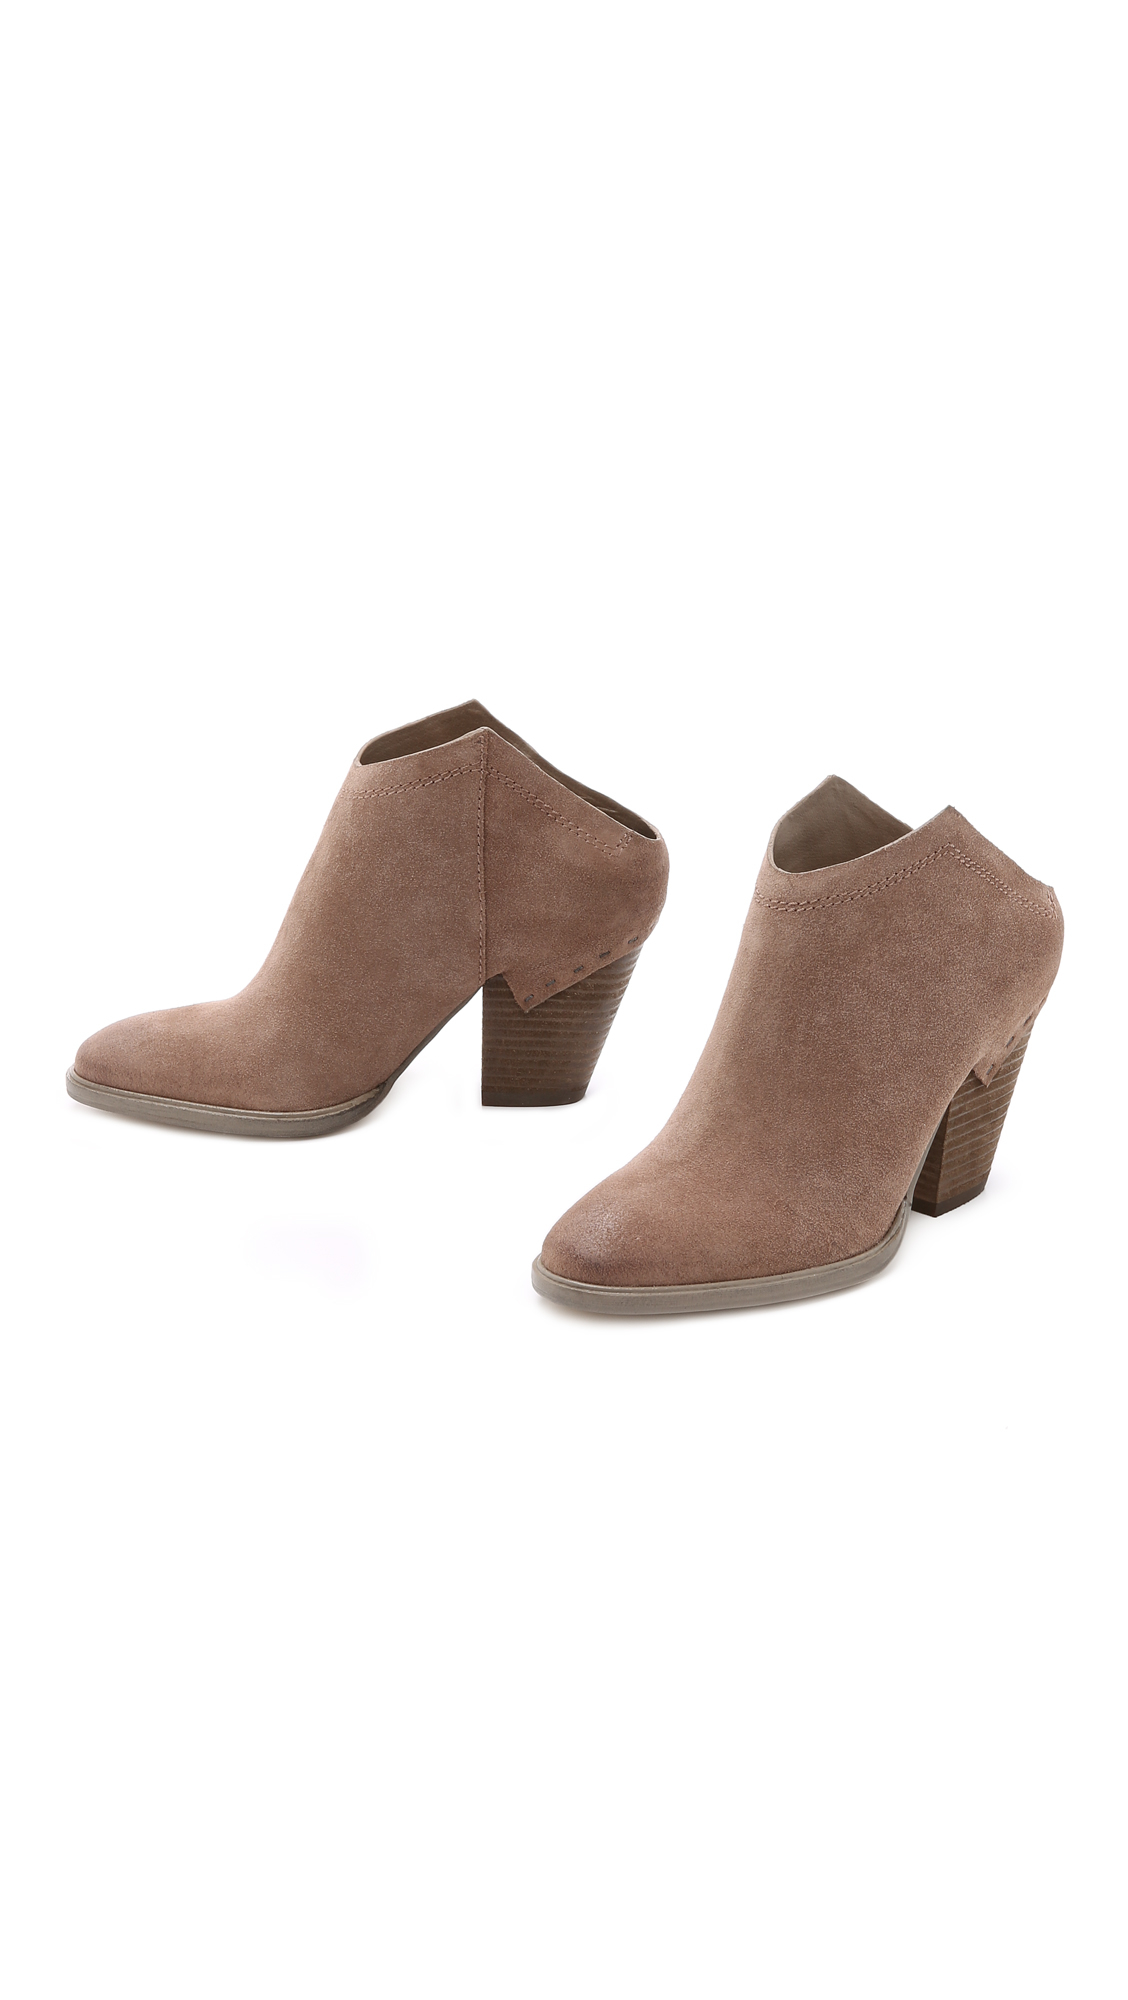 5a2cd196b1a2b3 Gallery. Previously sold at  Shopbop · Women s Dolce Vita Booties ...